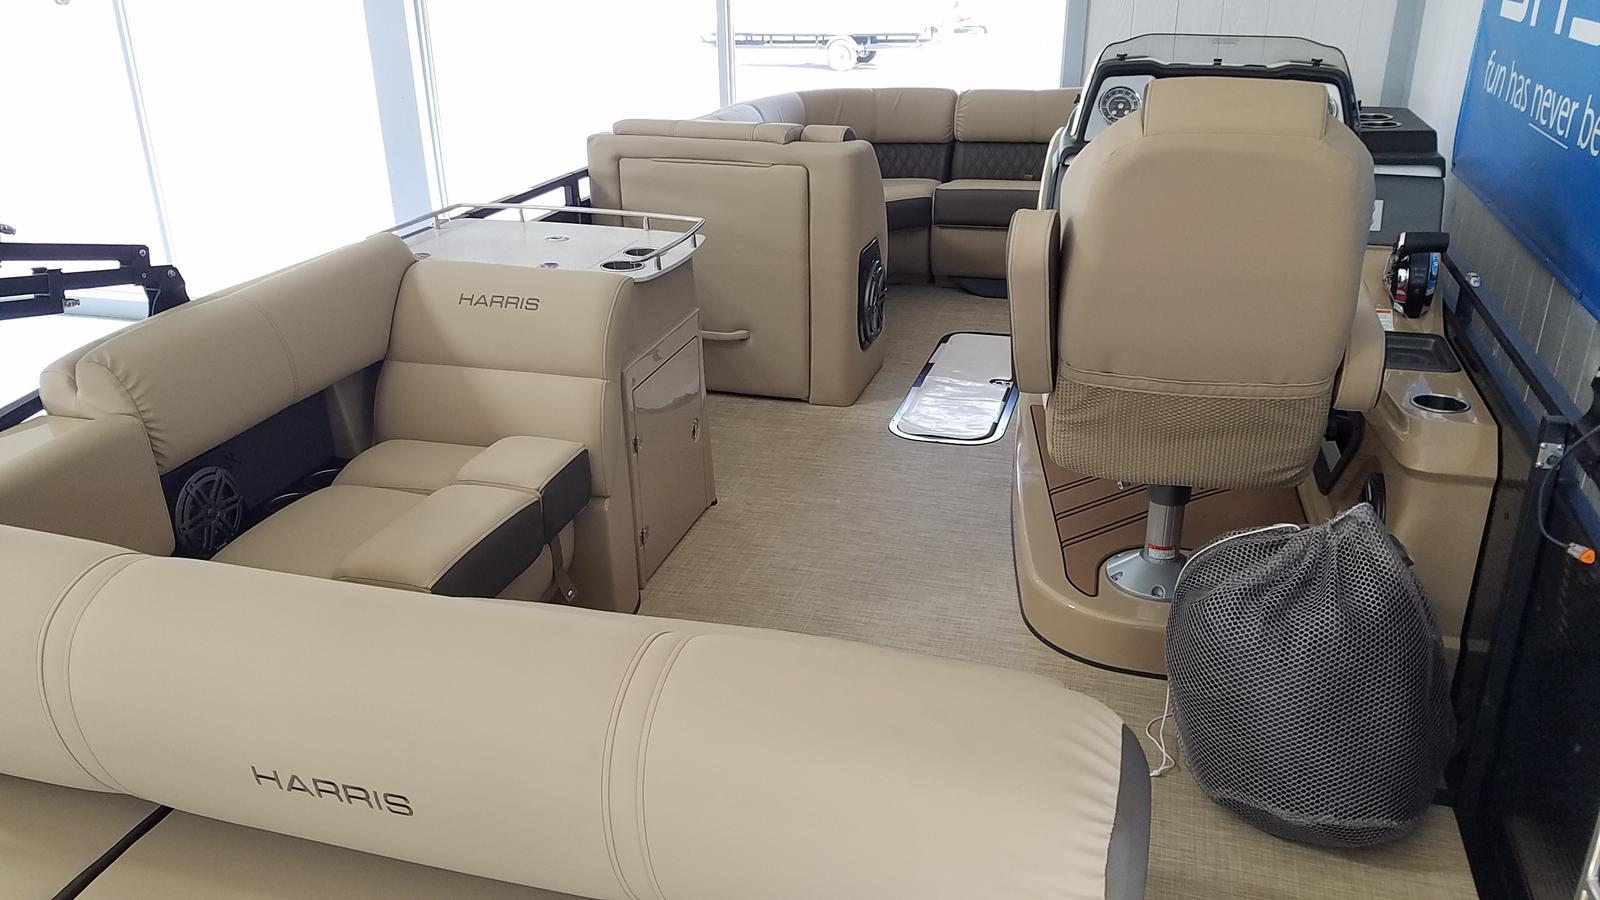 2021 Harris boat for sale, model of the boat is Solstice 230 & Image # 2 of 18